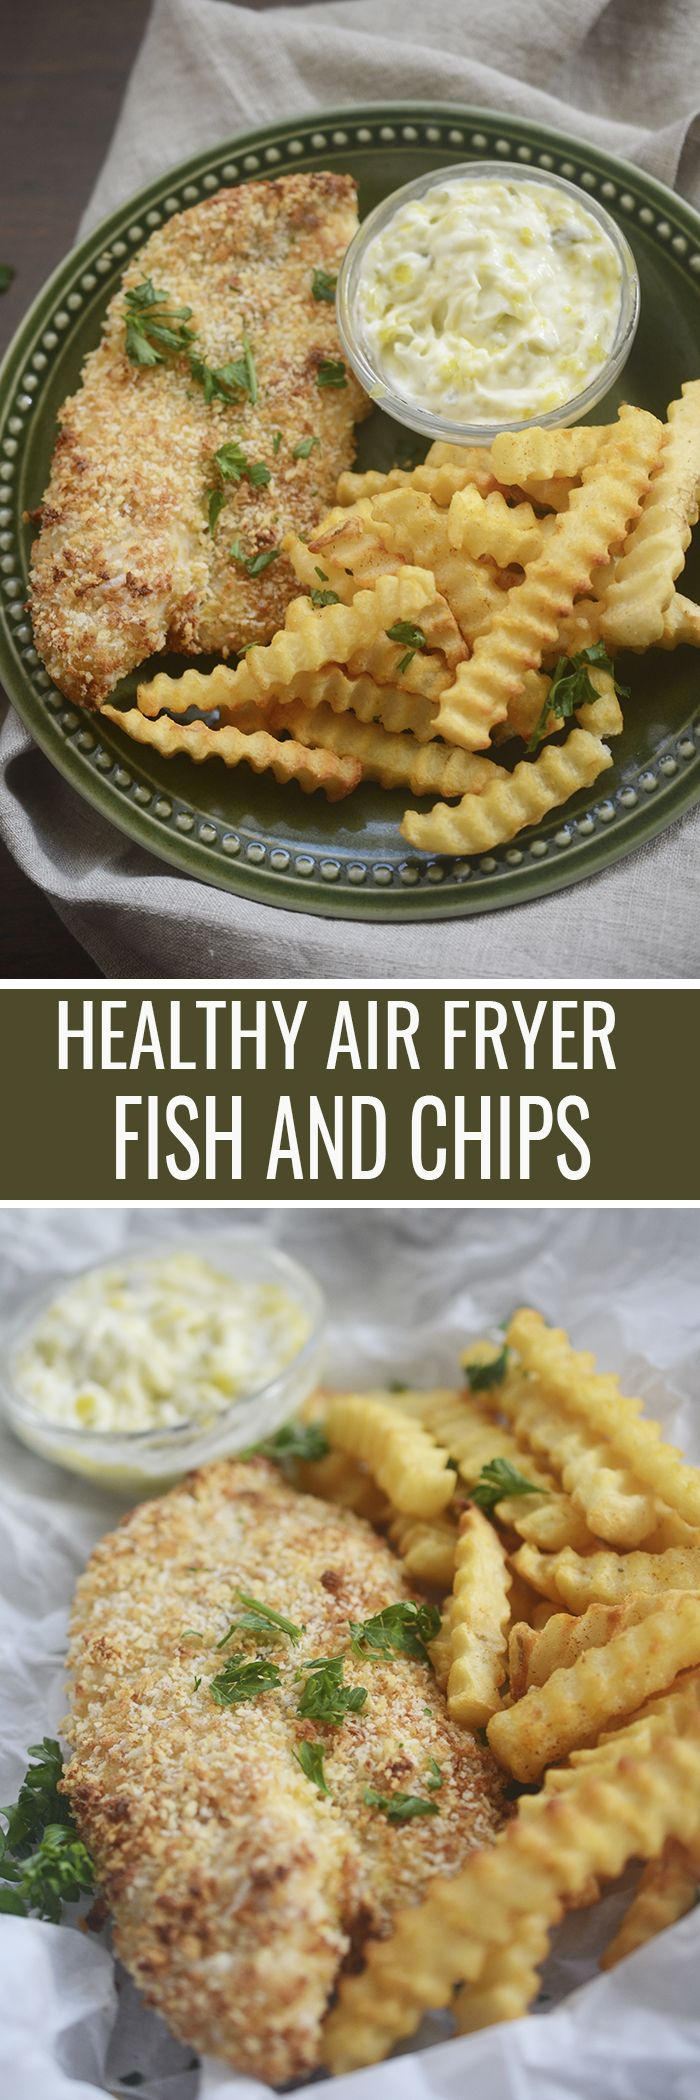 Best 25 air frying ideas on pinterest power air fryer for Air fryer fish and chips